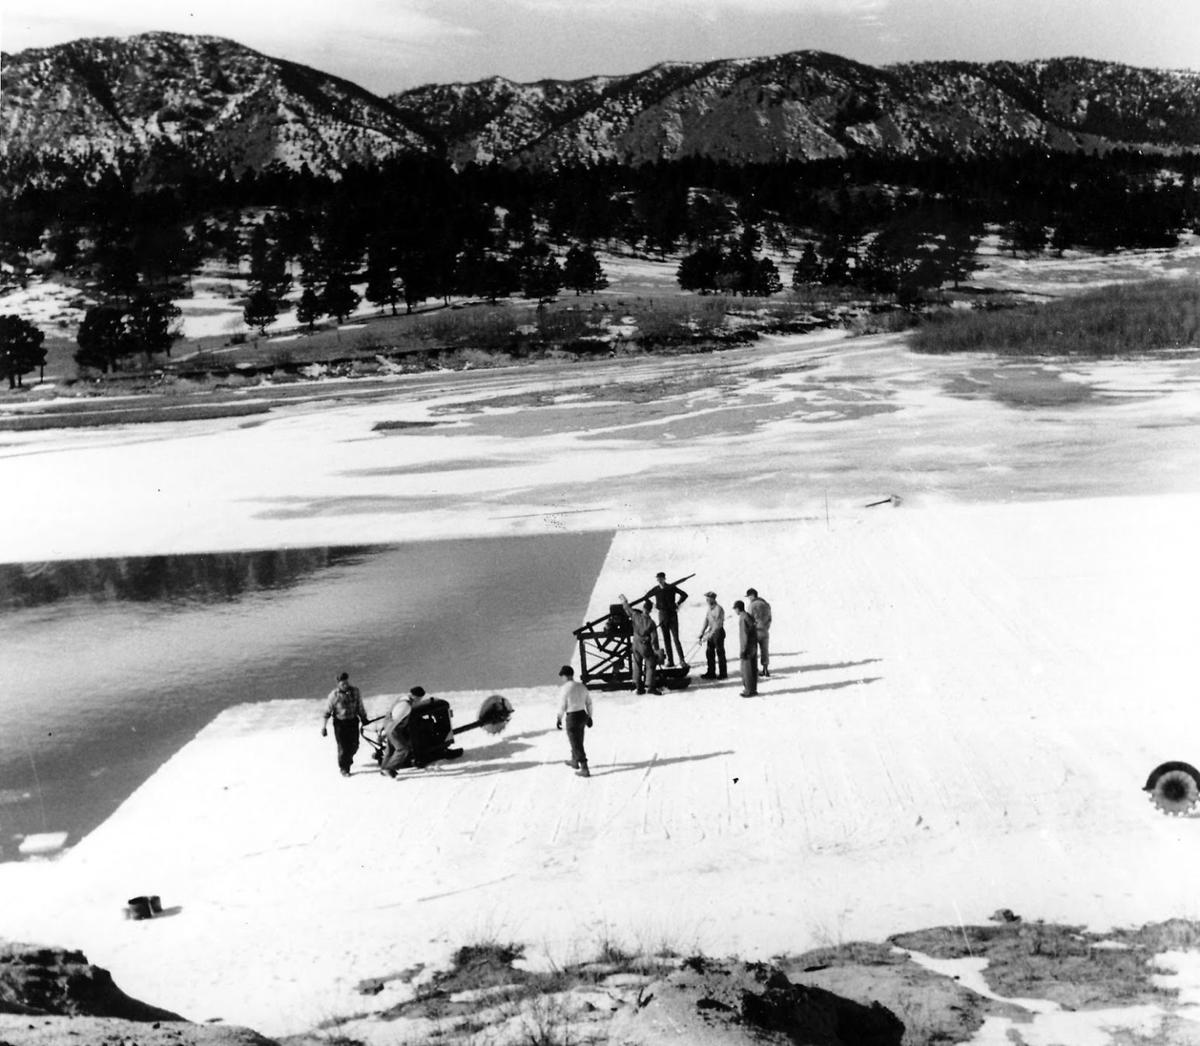 Snapshots: A black and white look at the Tri-Lakes of the past